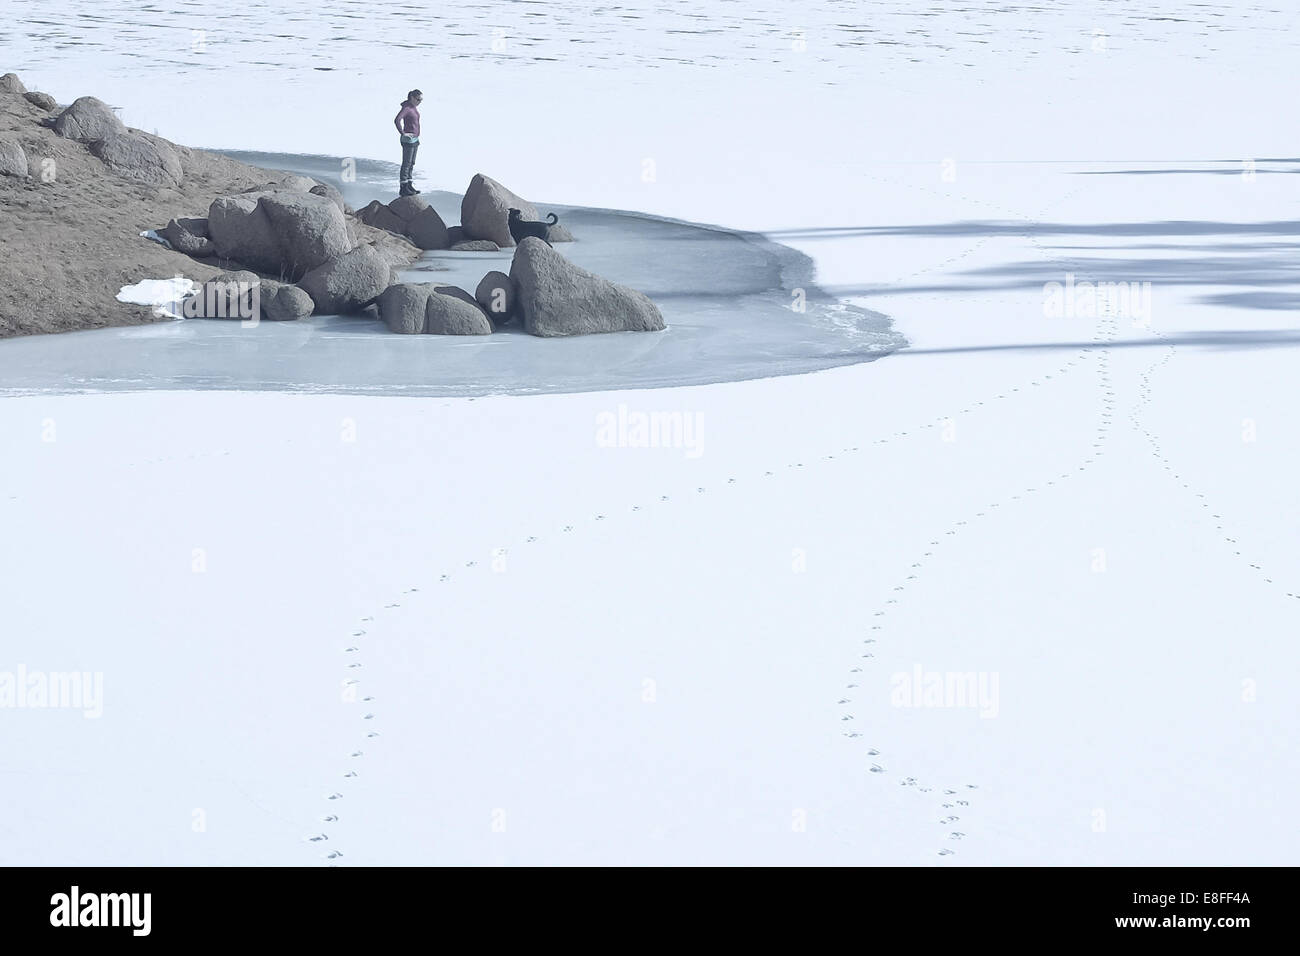 Woman with dog standing by  frozen lake, Colorado, America, USA - Stock Image